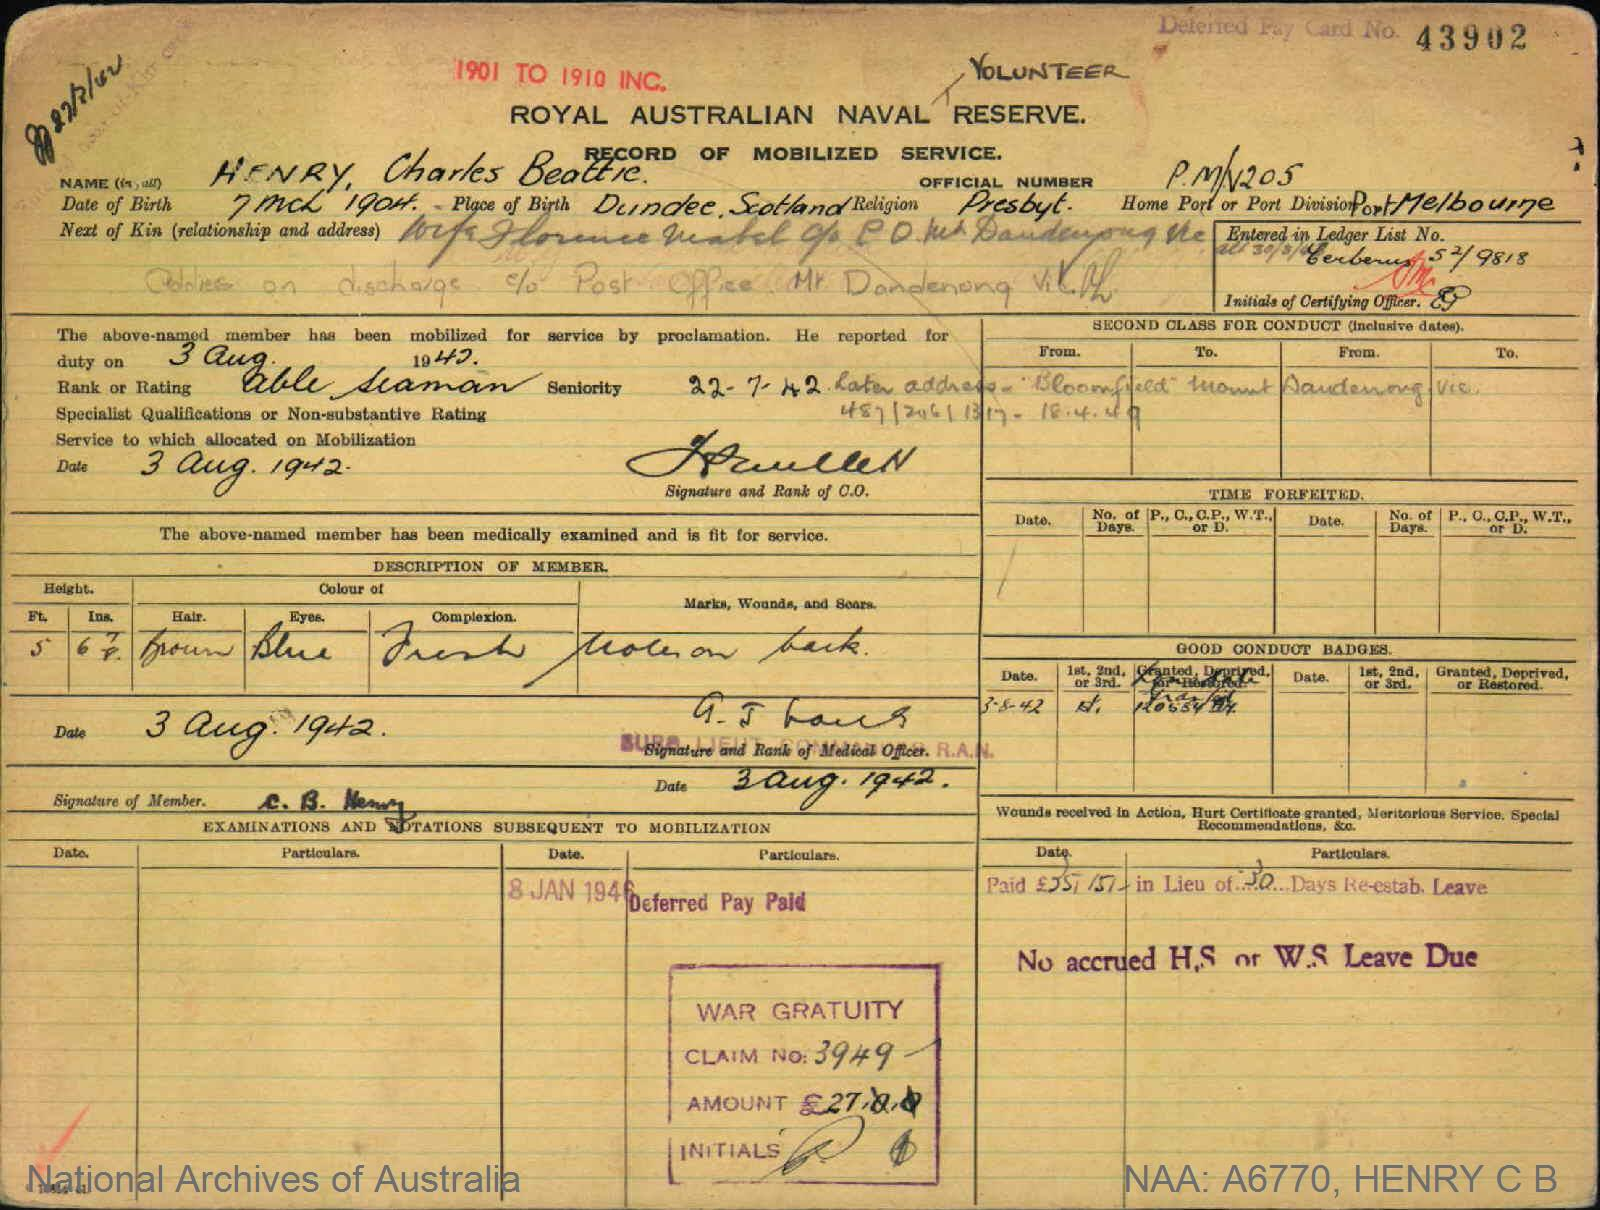 HENRY CHARLES BEATTIE : Service Number - PM/V205 : Date of birth - 07 Mar 1904 : Place of birth - DUNDEE SCOTLAND : Place of enlistment - PORT MELBOURNE VIC : Next of Kin - FLORENCE